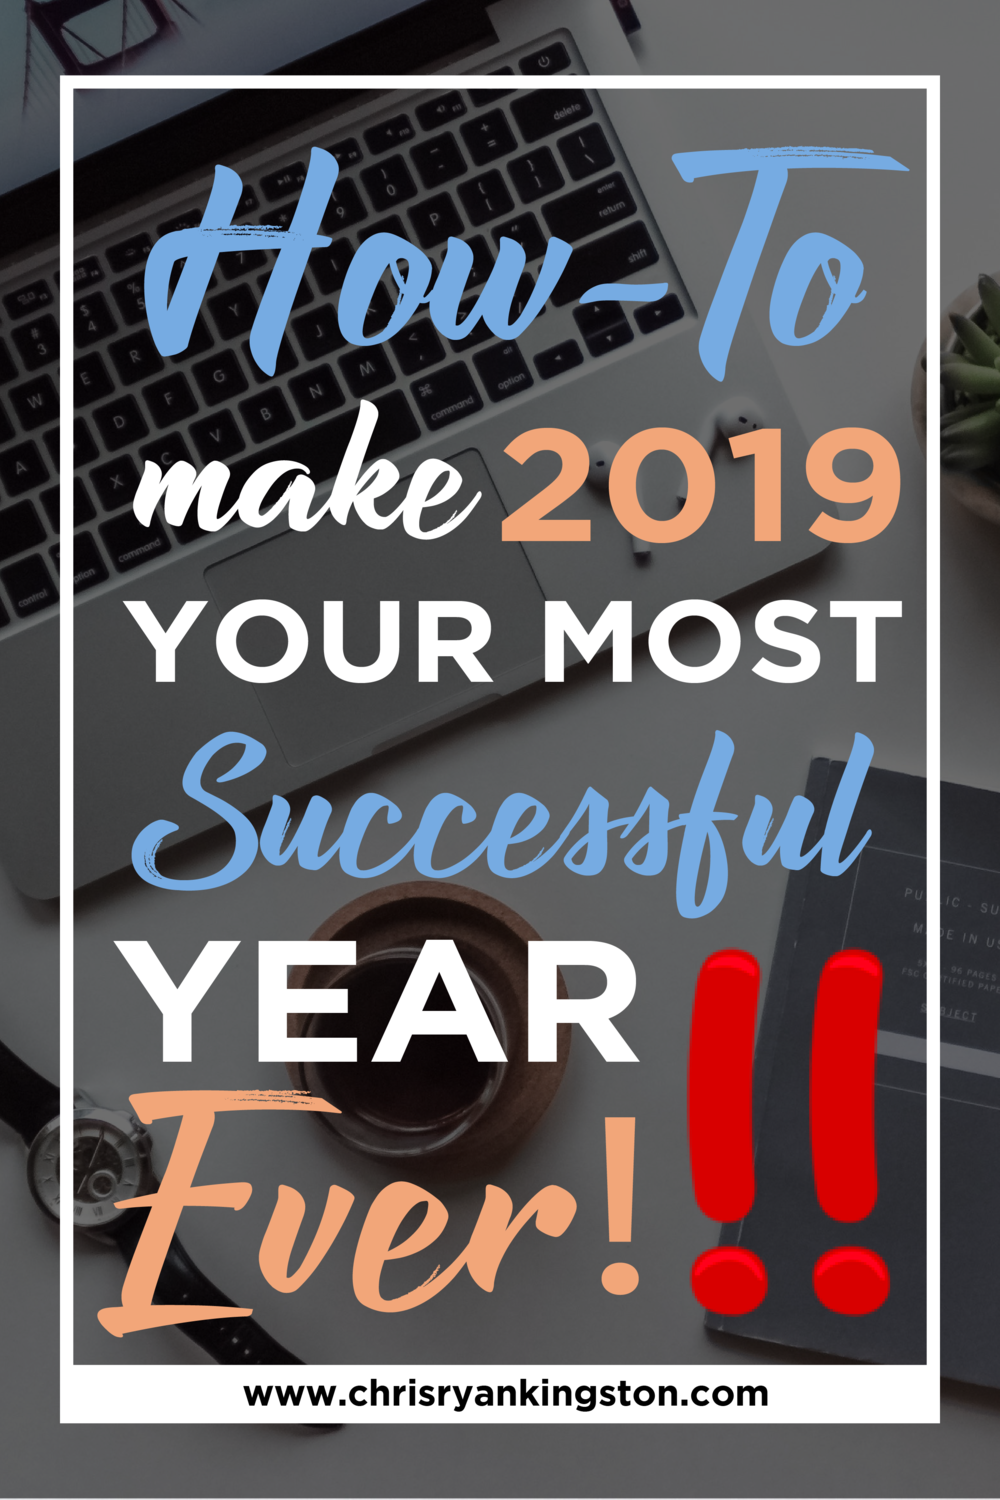 How To Make 2019 Your Most Successful Year Ever & Take That First Step! chrisryankingston.com